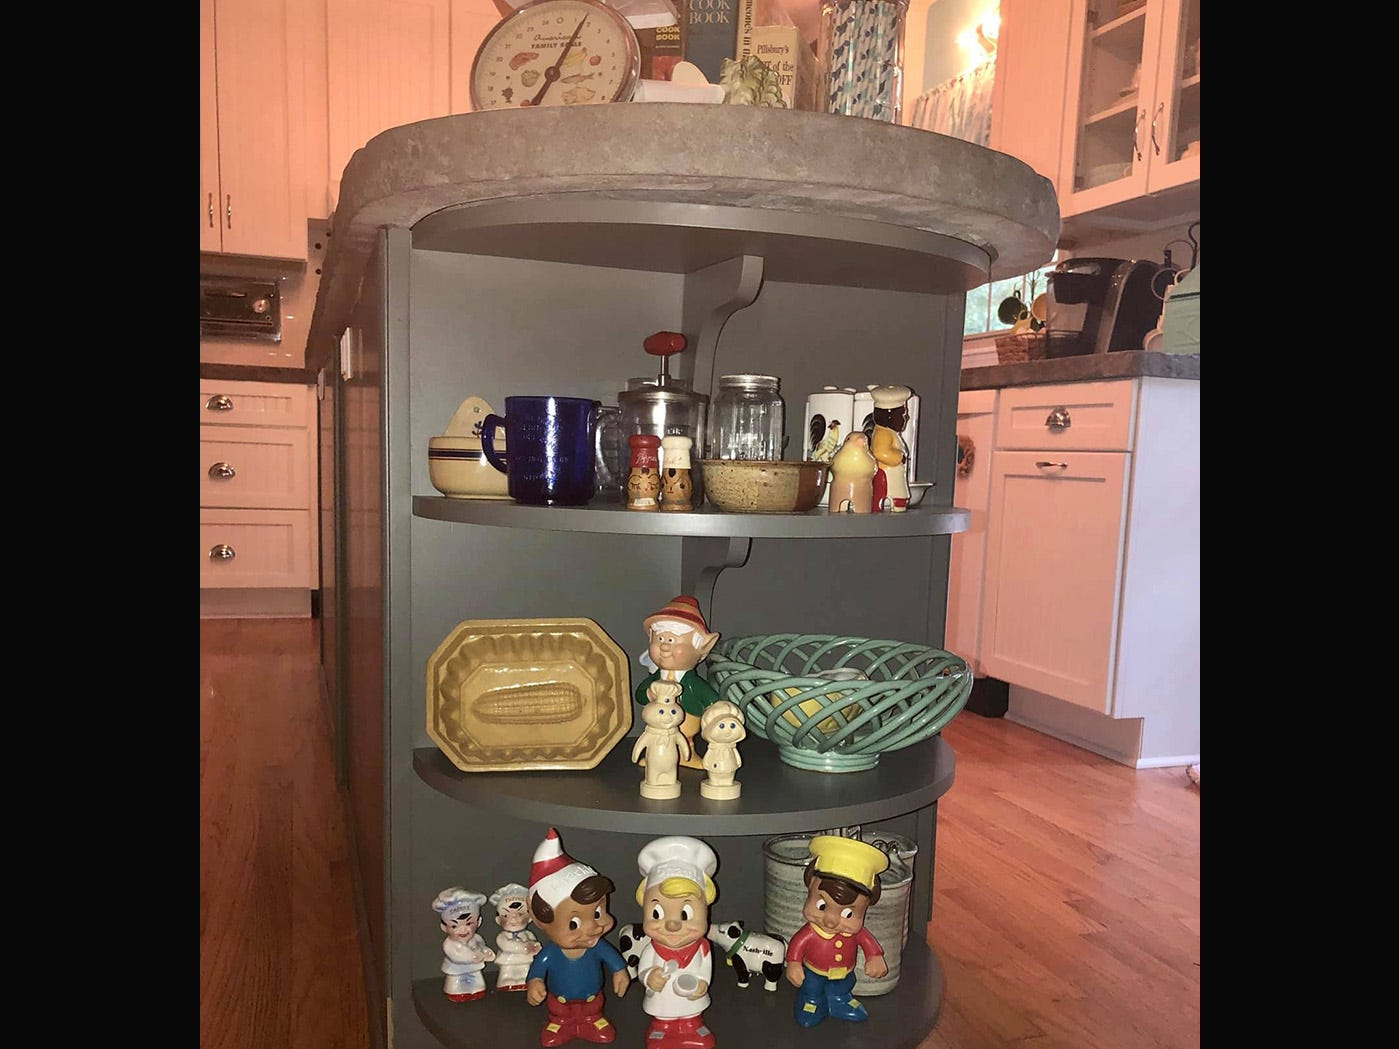 Pop culture knick knacks, collected from antique stores, add a pop of color to the retro kitchen design.